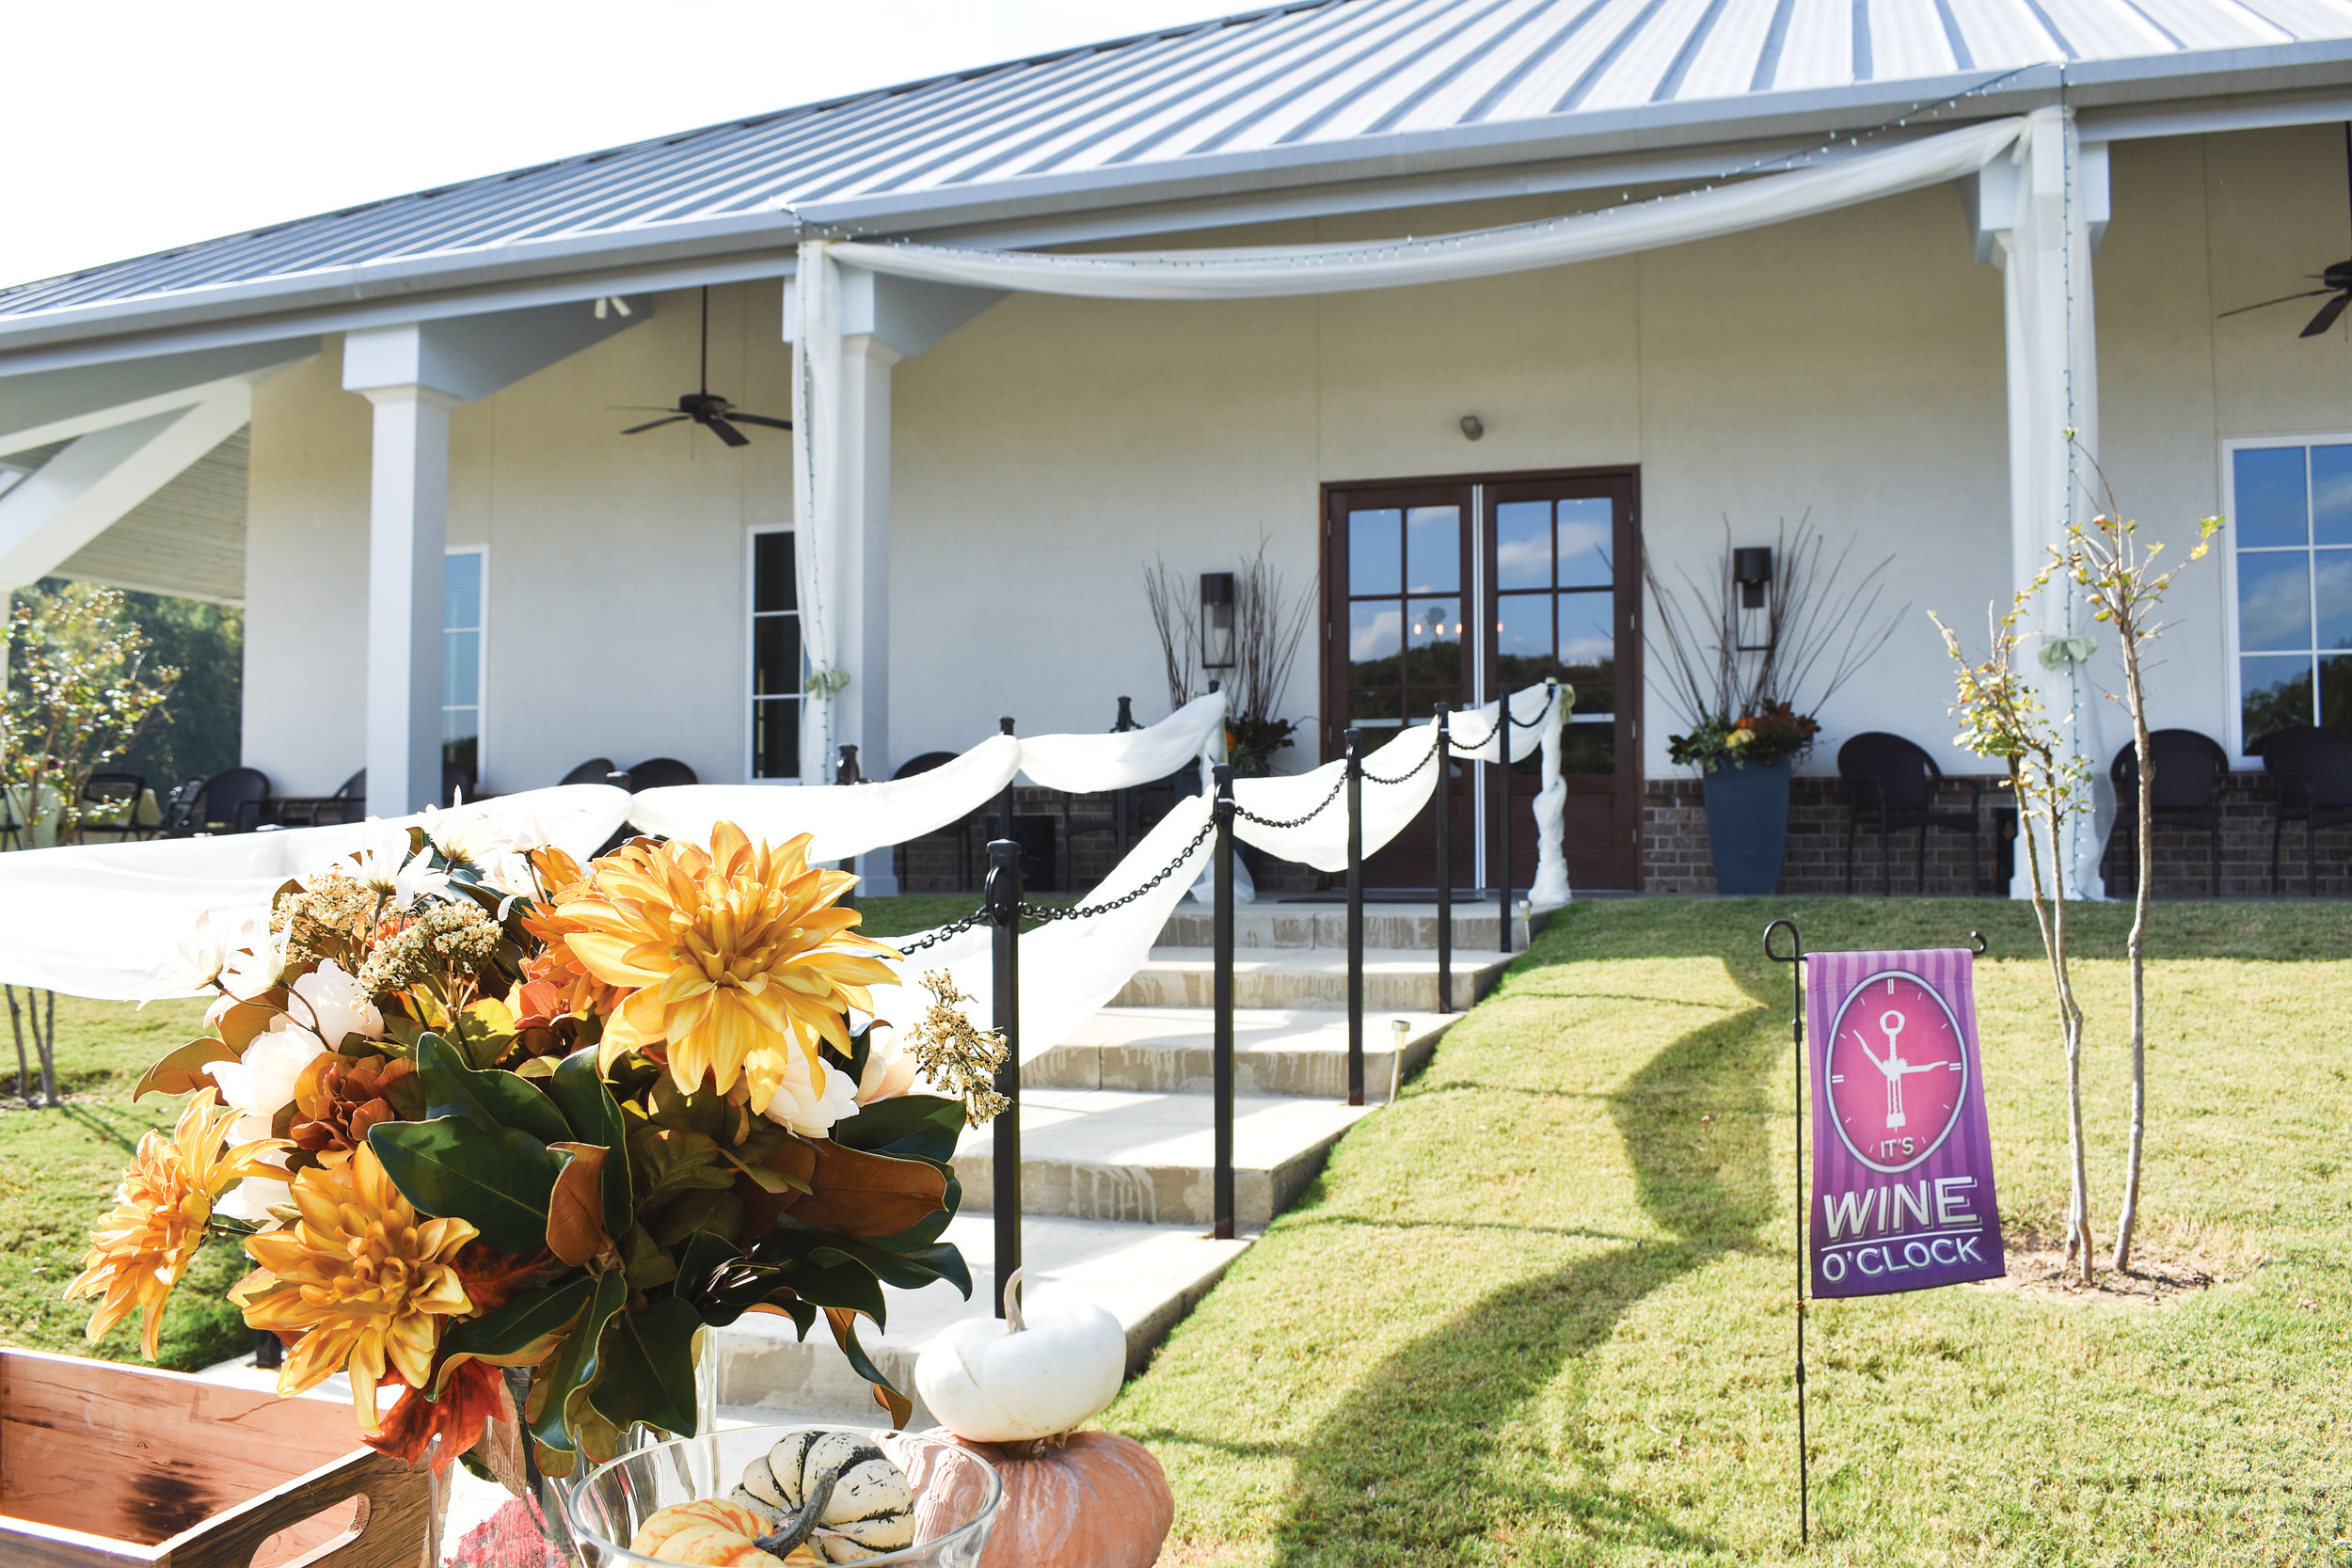 Delta Blues Winery sets the perfect stage for an elegant, picturesque wedding ceremony and reception.